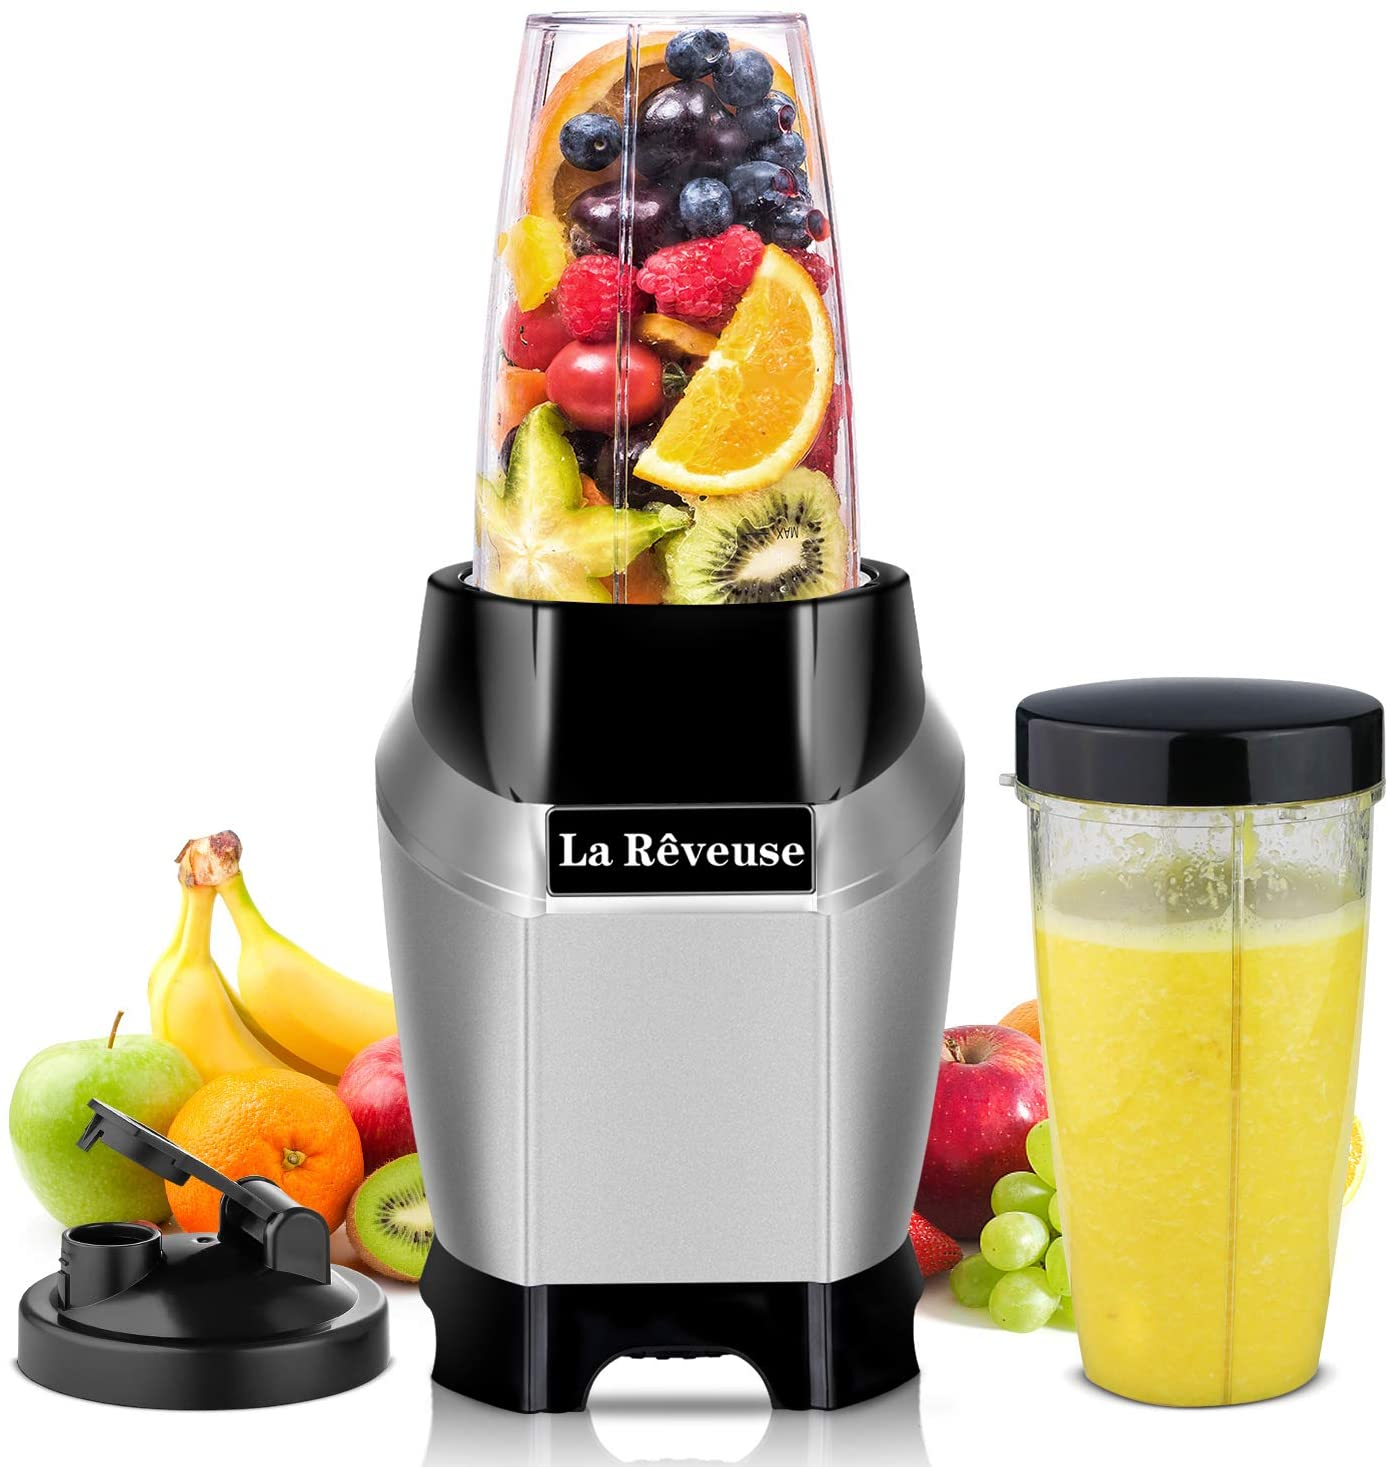 La-Reveuse counter-top high end Blender for shakes and smoothies.